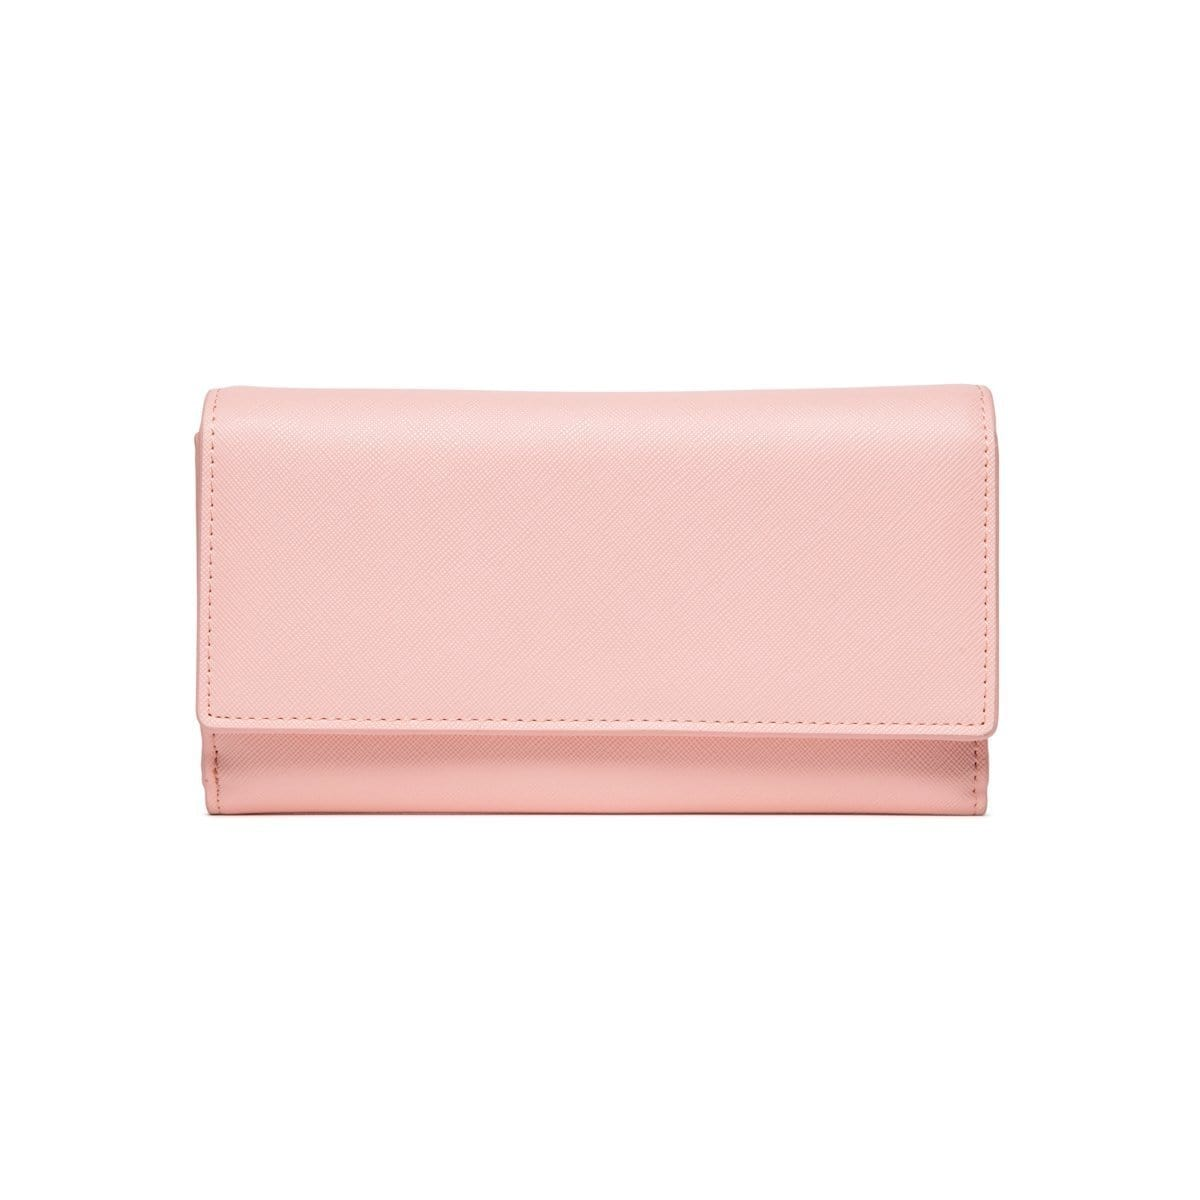 Rose Quartz Bella Wallet (PERSONALISE ME!)